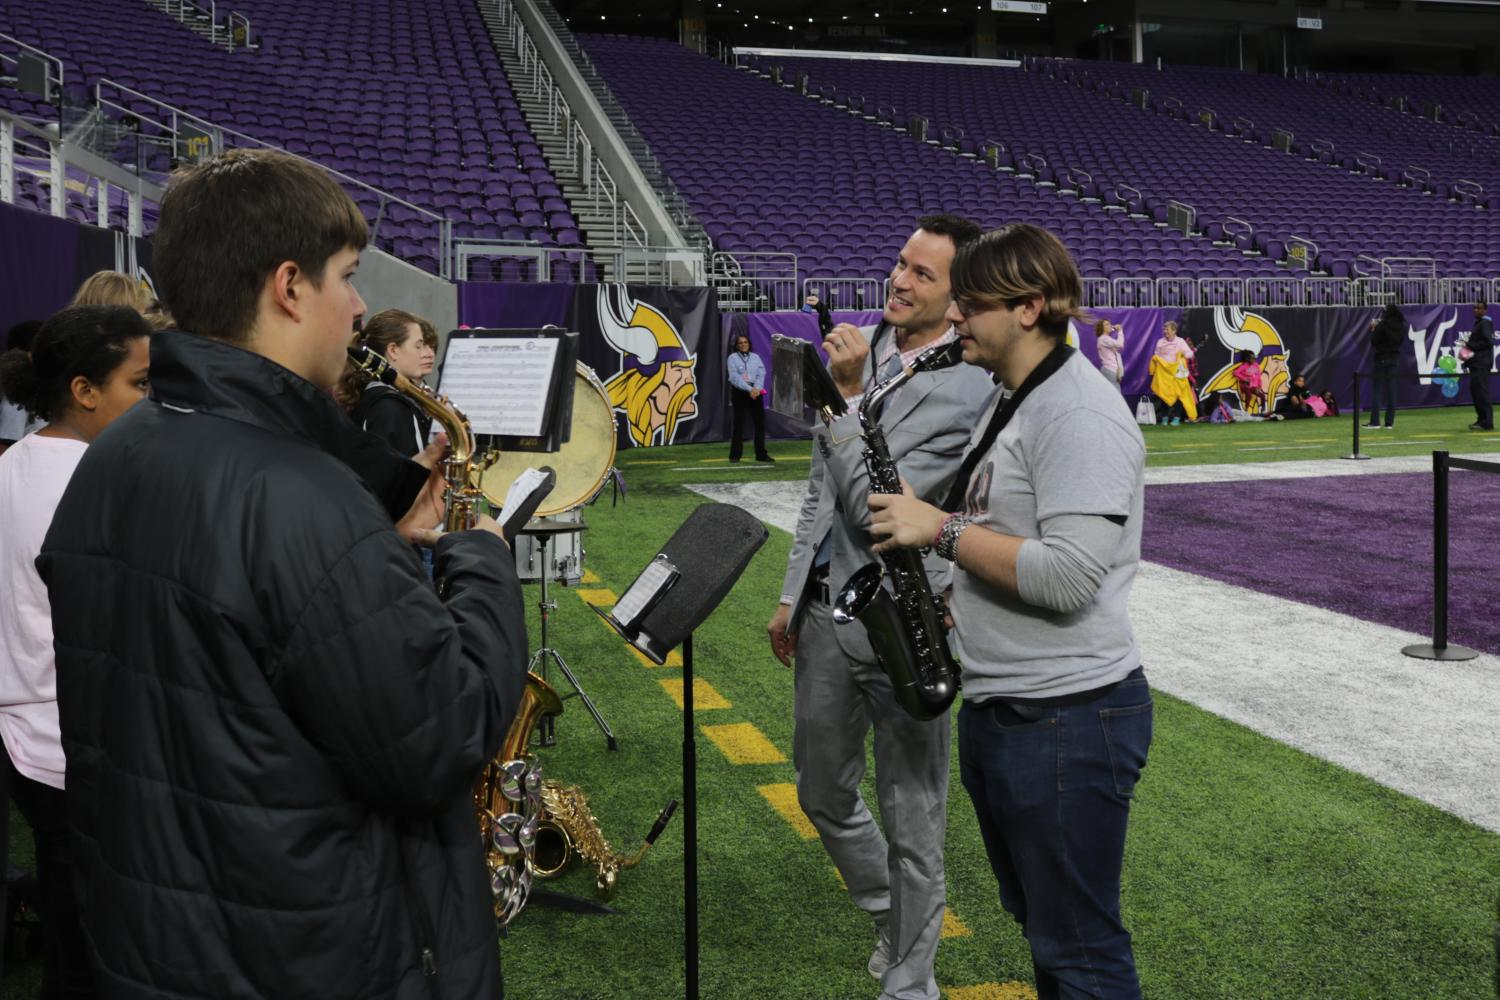 Senior Ethan Rickert stands alongside band teacher Steven Schmidtz during one of their warmups at the Making Strides Against Breast Cancer walk. The walk took place Oct. 8. at the U.S. Bank Stadium.